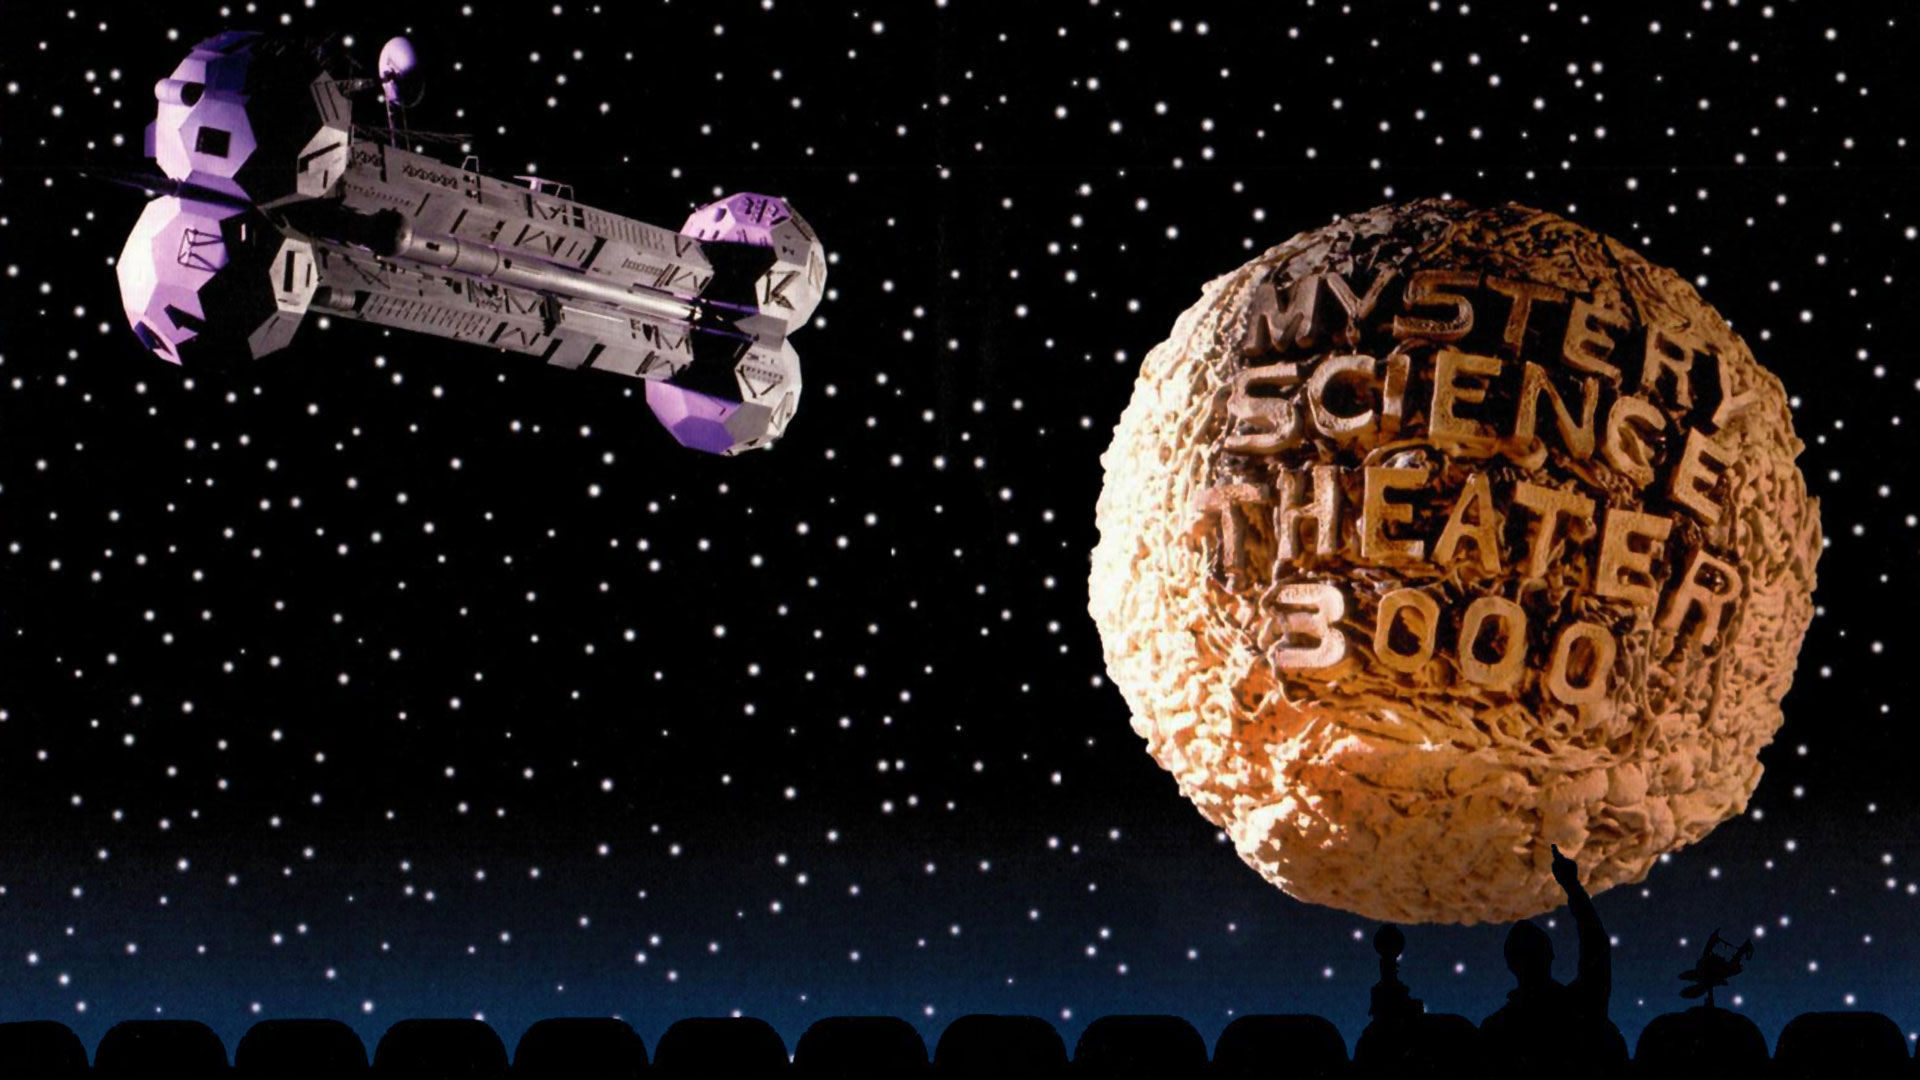 Cleaned up this MST3K image as a wallpaper thought Id share MST3K 1920x1080